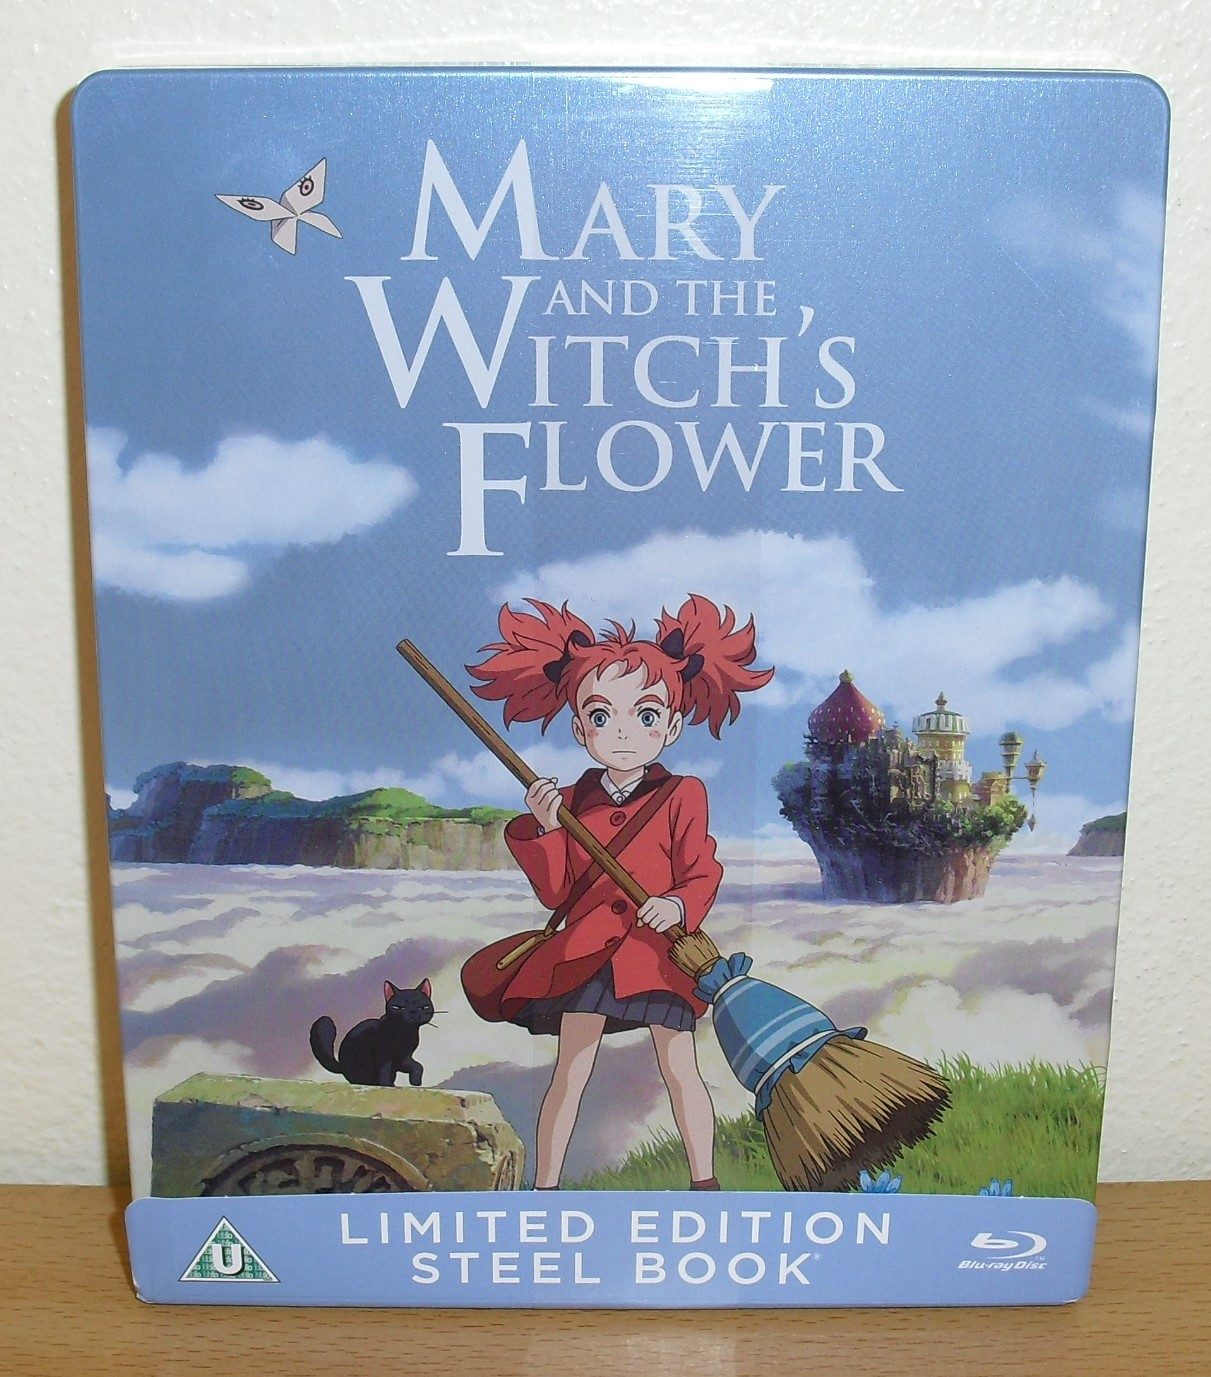 https://cld.pt/dl/download/6125ed8b-8d7b-4961-910d-00e4869ab22a/Mary.and.the.Witchs.Flower.Steelbook.%281%29.JPG